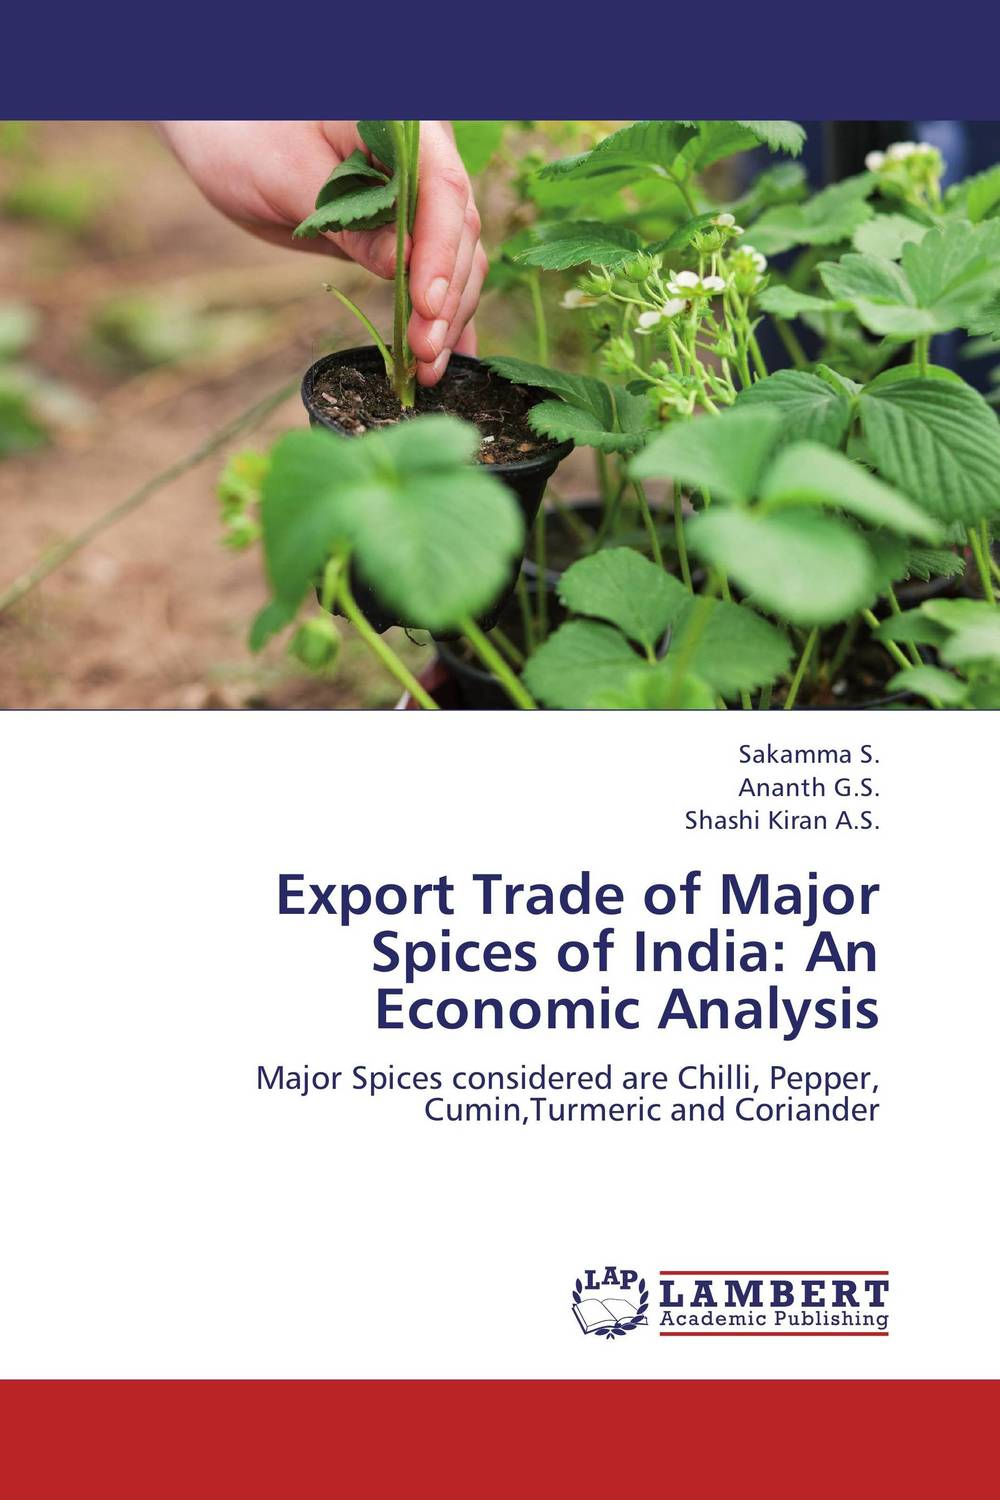 Export Trade of Major Spices of India: An Economic Analysis